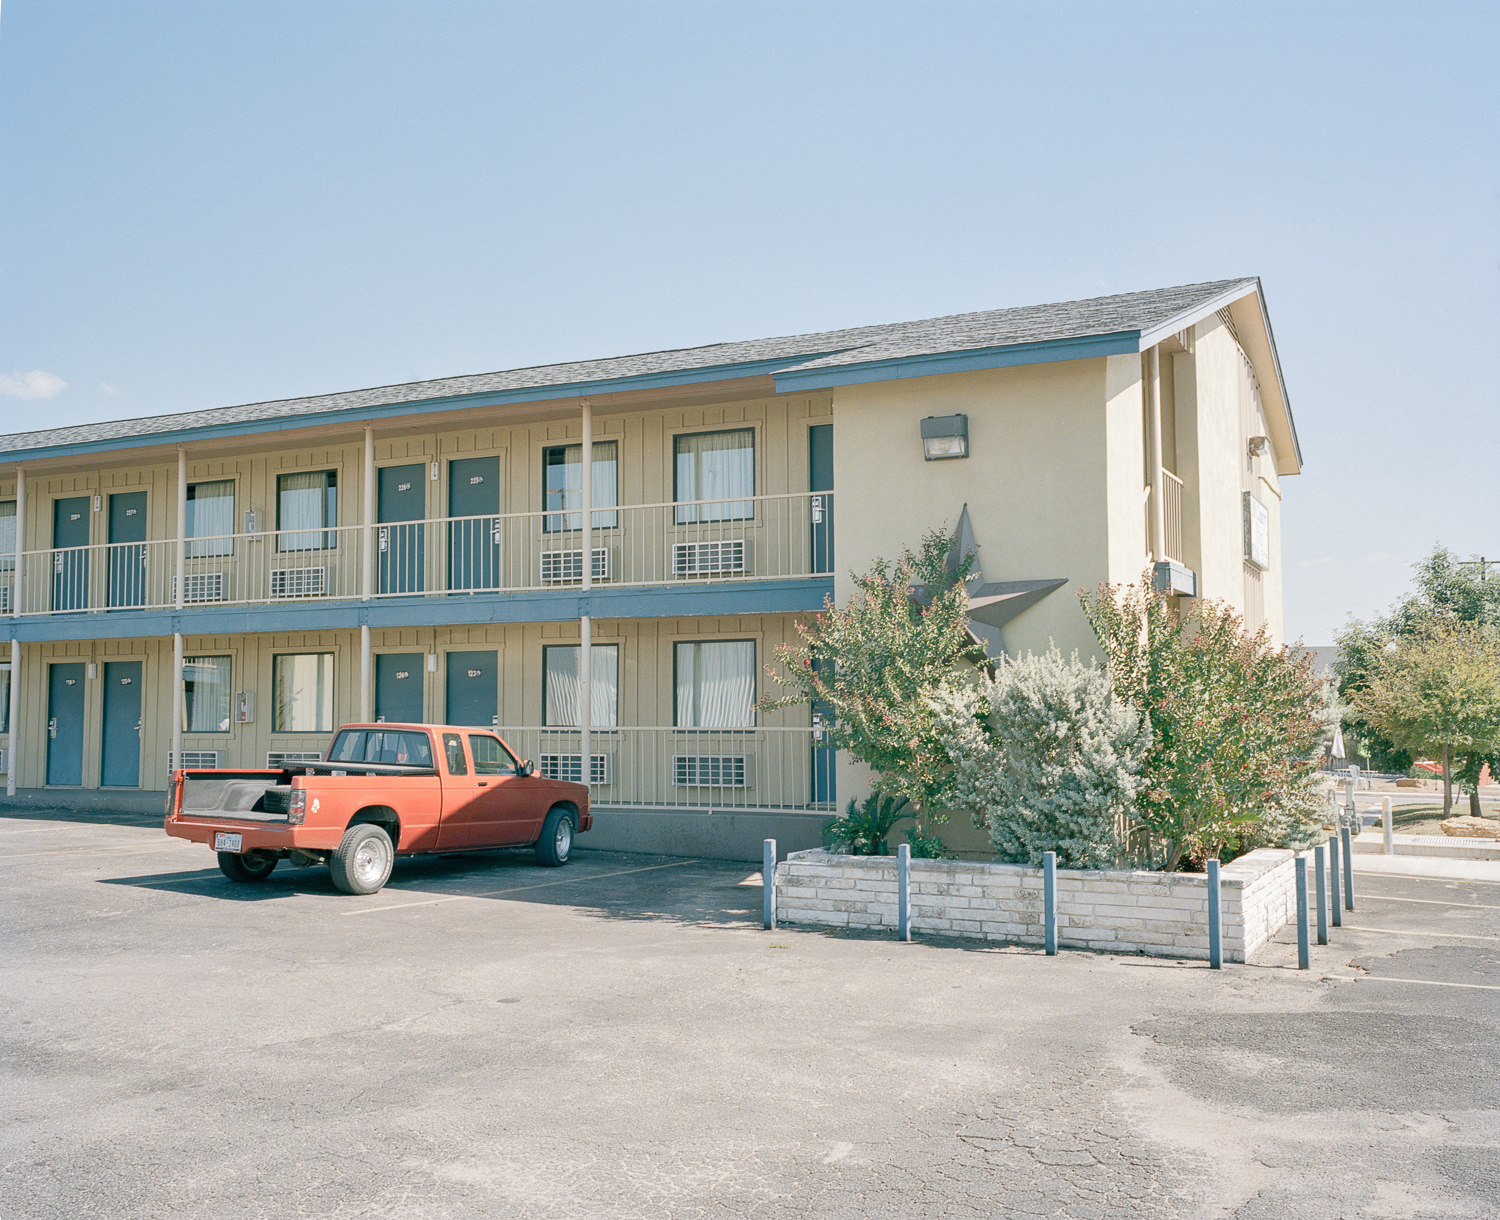 Hill Country Motel